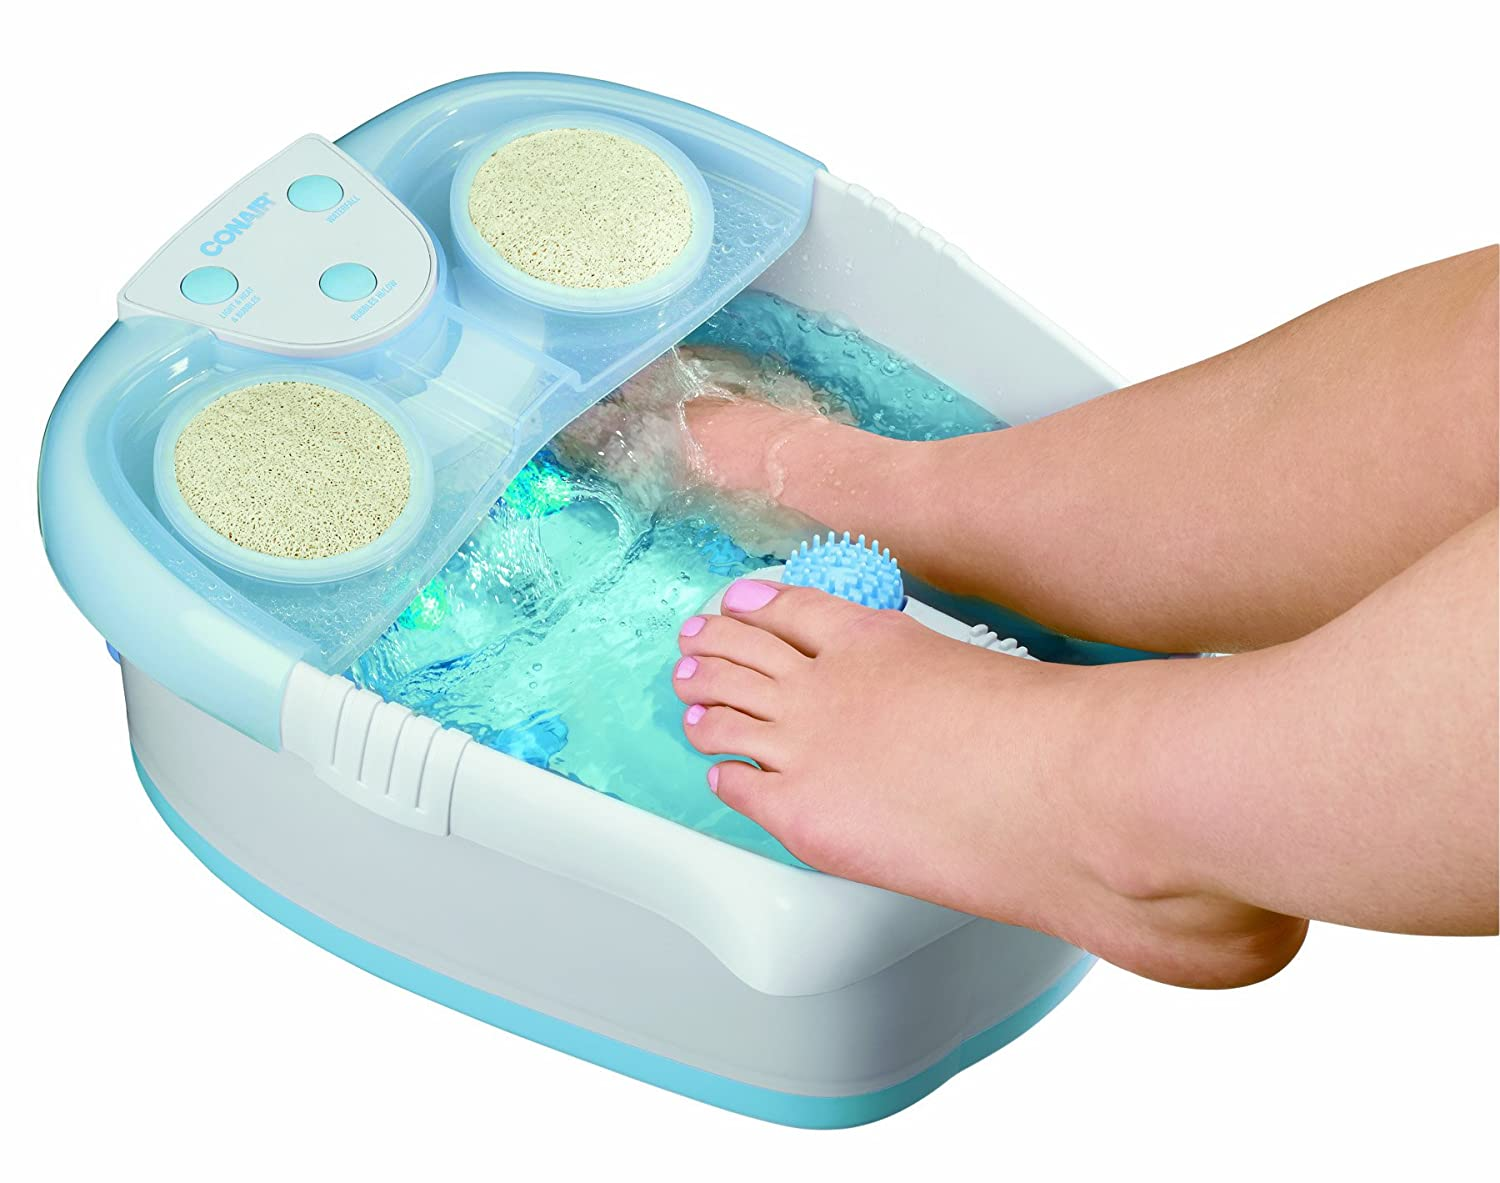 Conair Massaging Foot Spa CHECK PRICE ON AMAZON